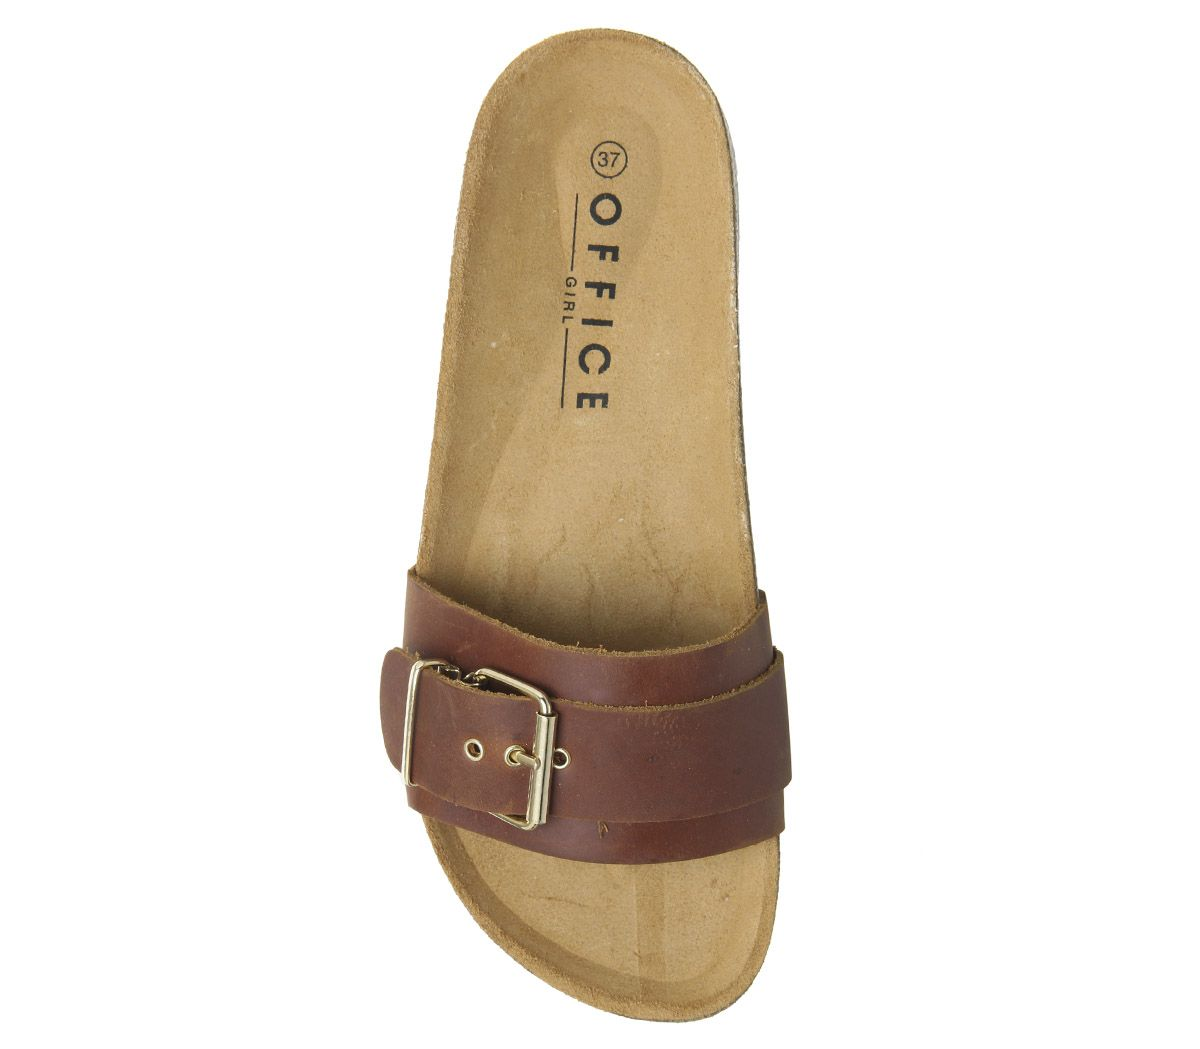 Womens-Office-Stereo-Buckle-Footbed-Sandals-Tan-Leather-Sandals thumbnail 11